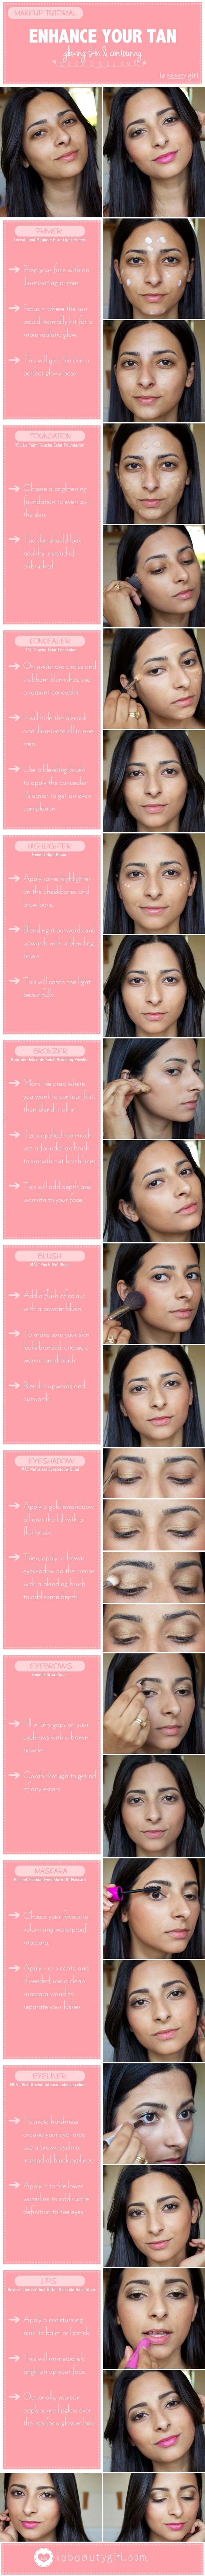 Enhance Your Tan: Glowing Skin & Contouring (Makeup Tutorial)